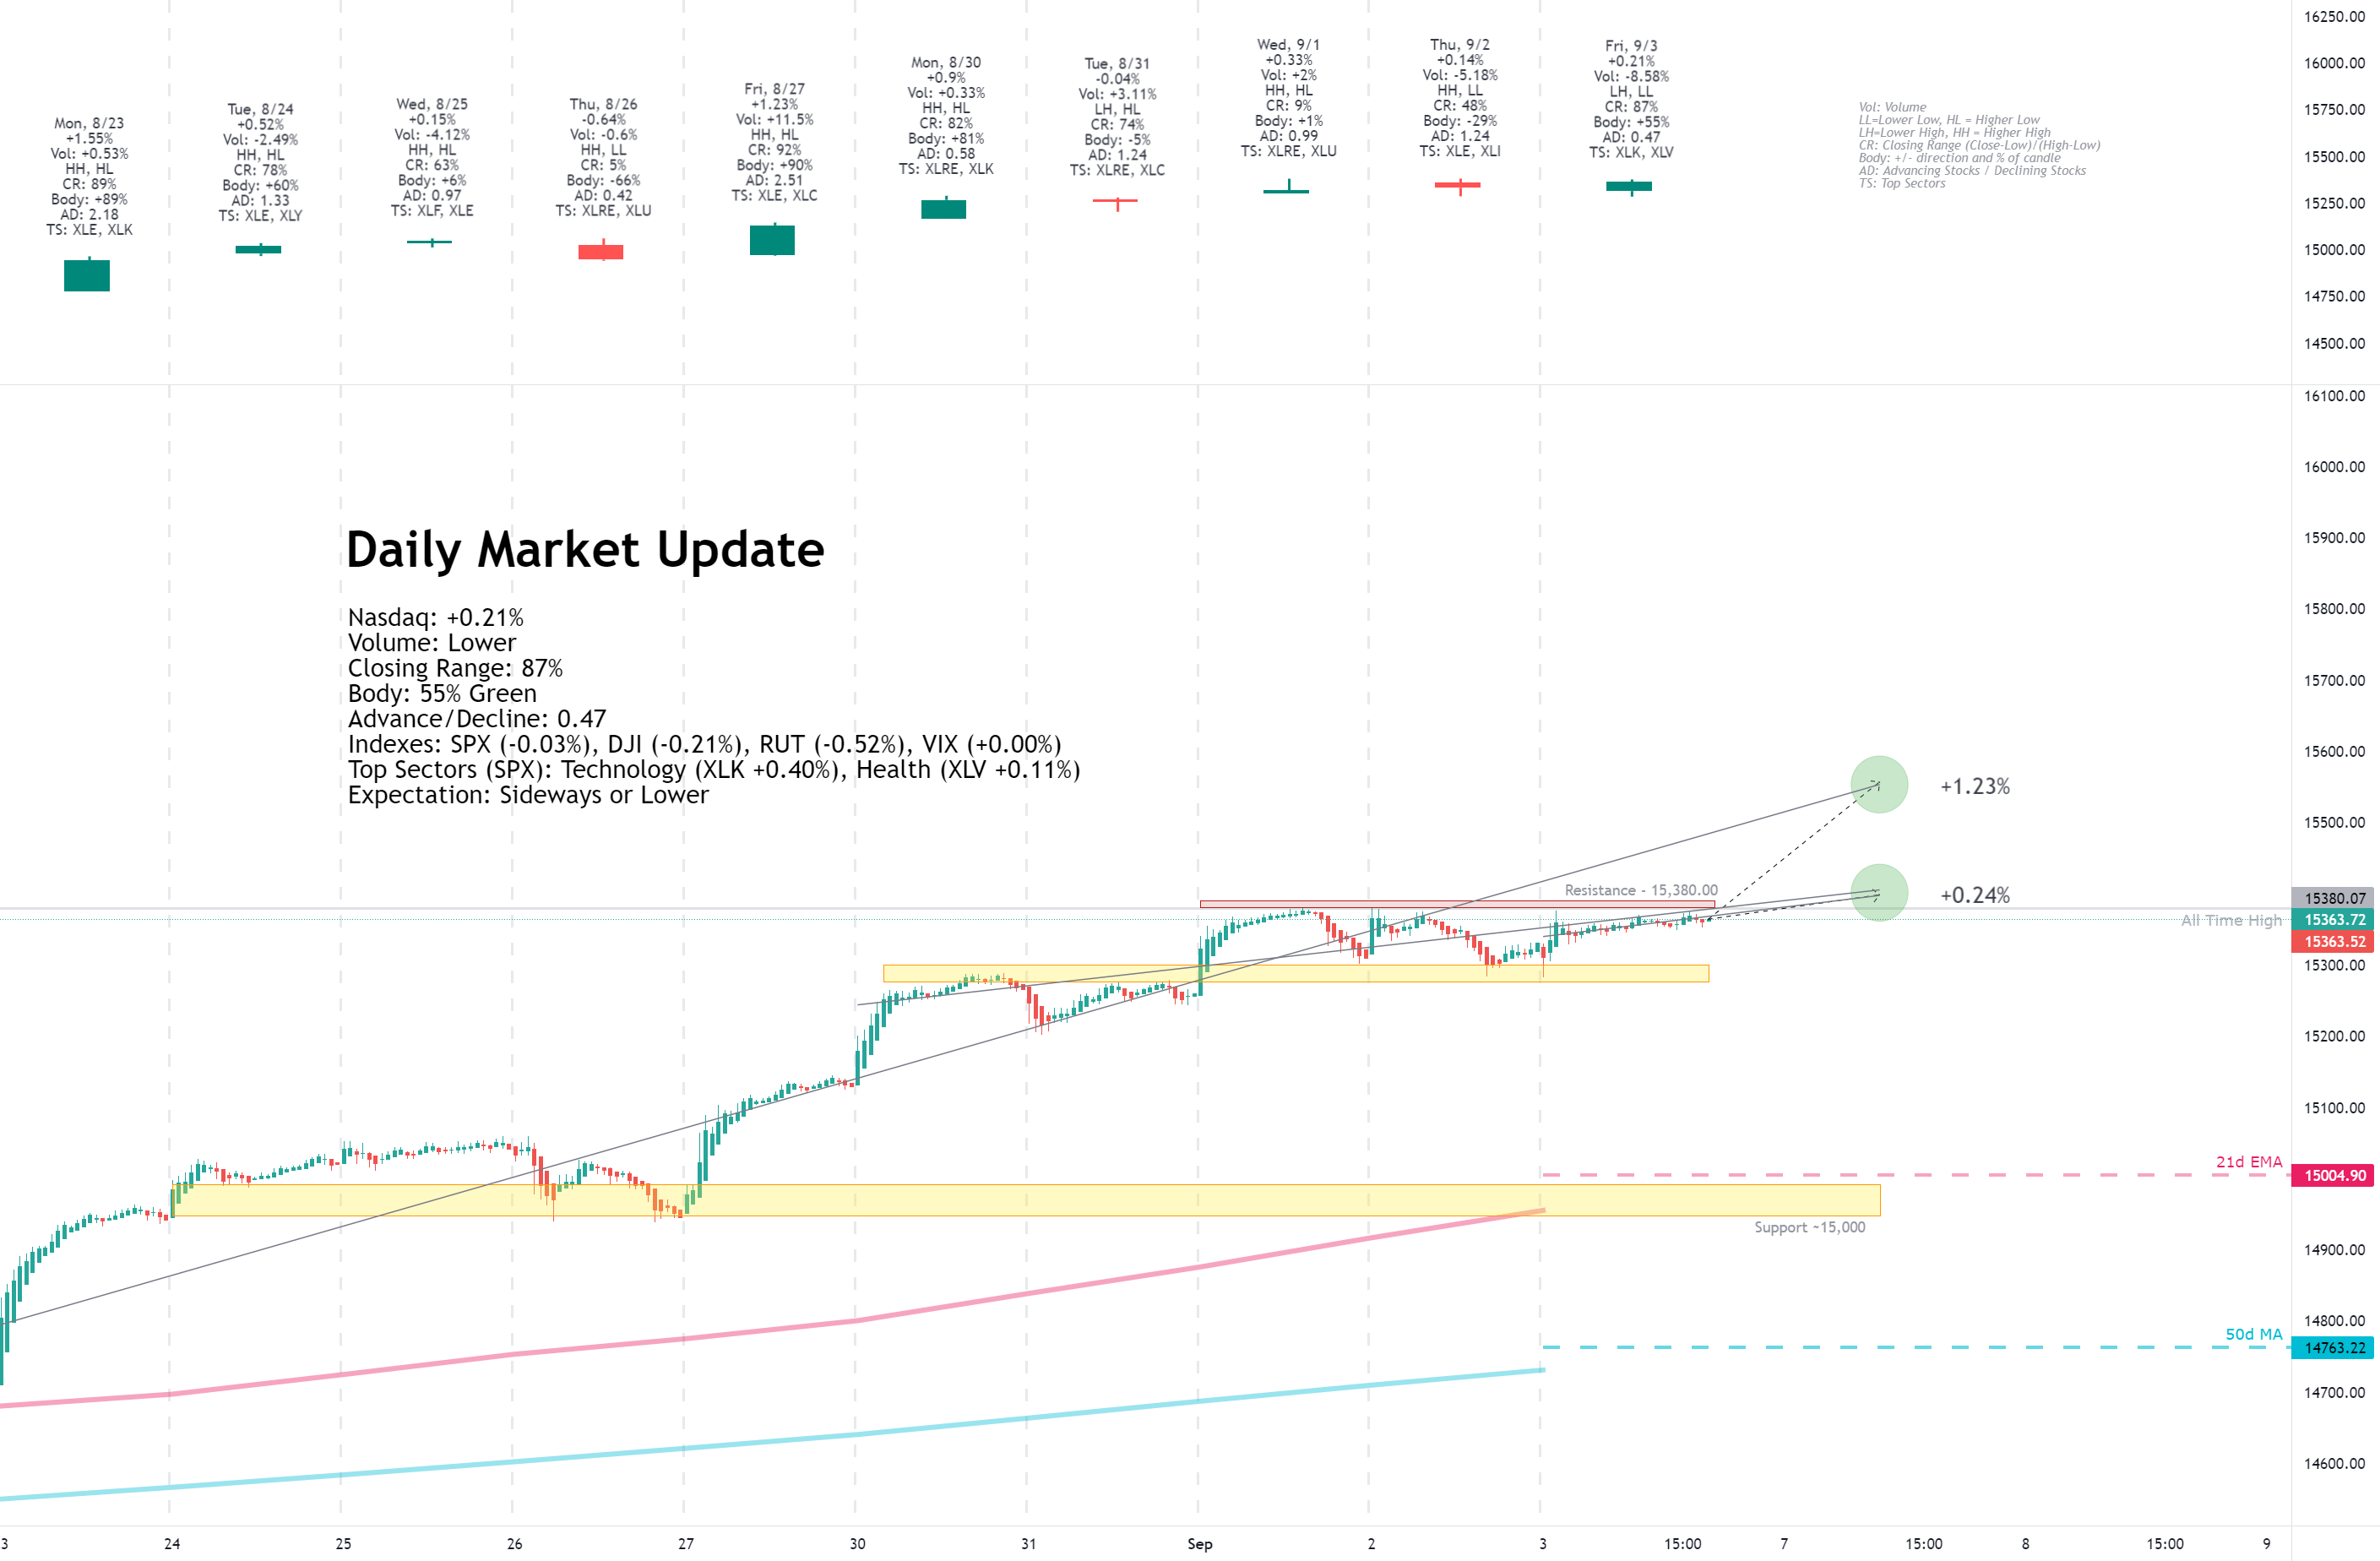 Daily Market Update for 9/3